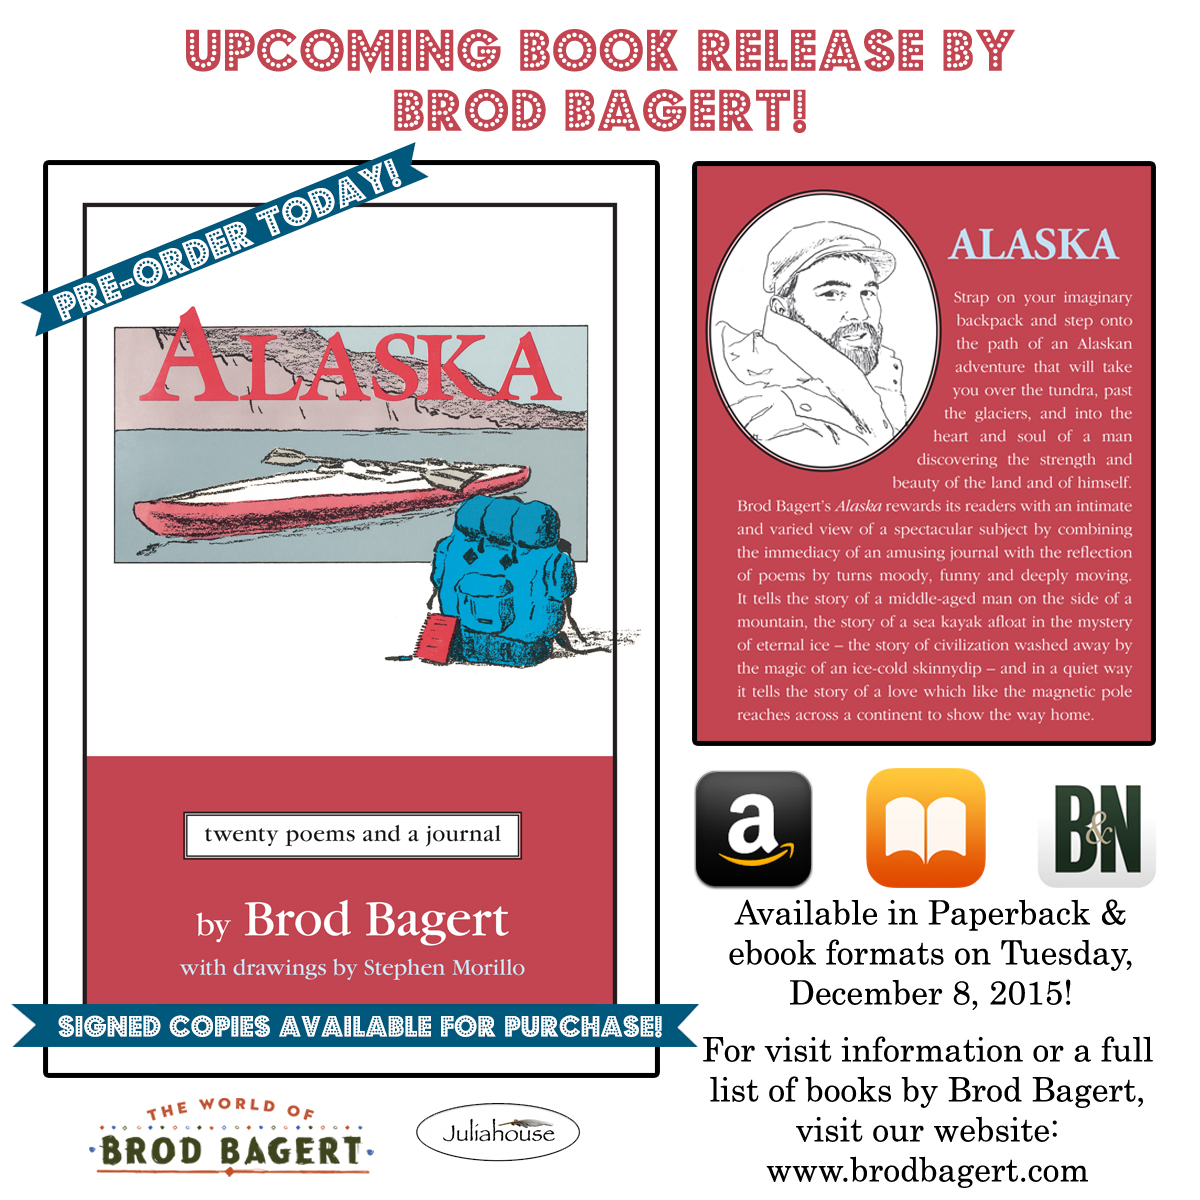 Ebook_announcement_Alaska_11-16-15